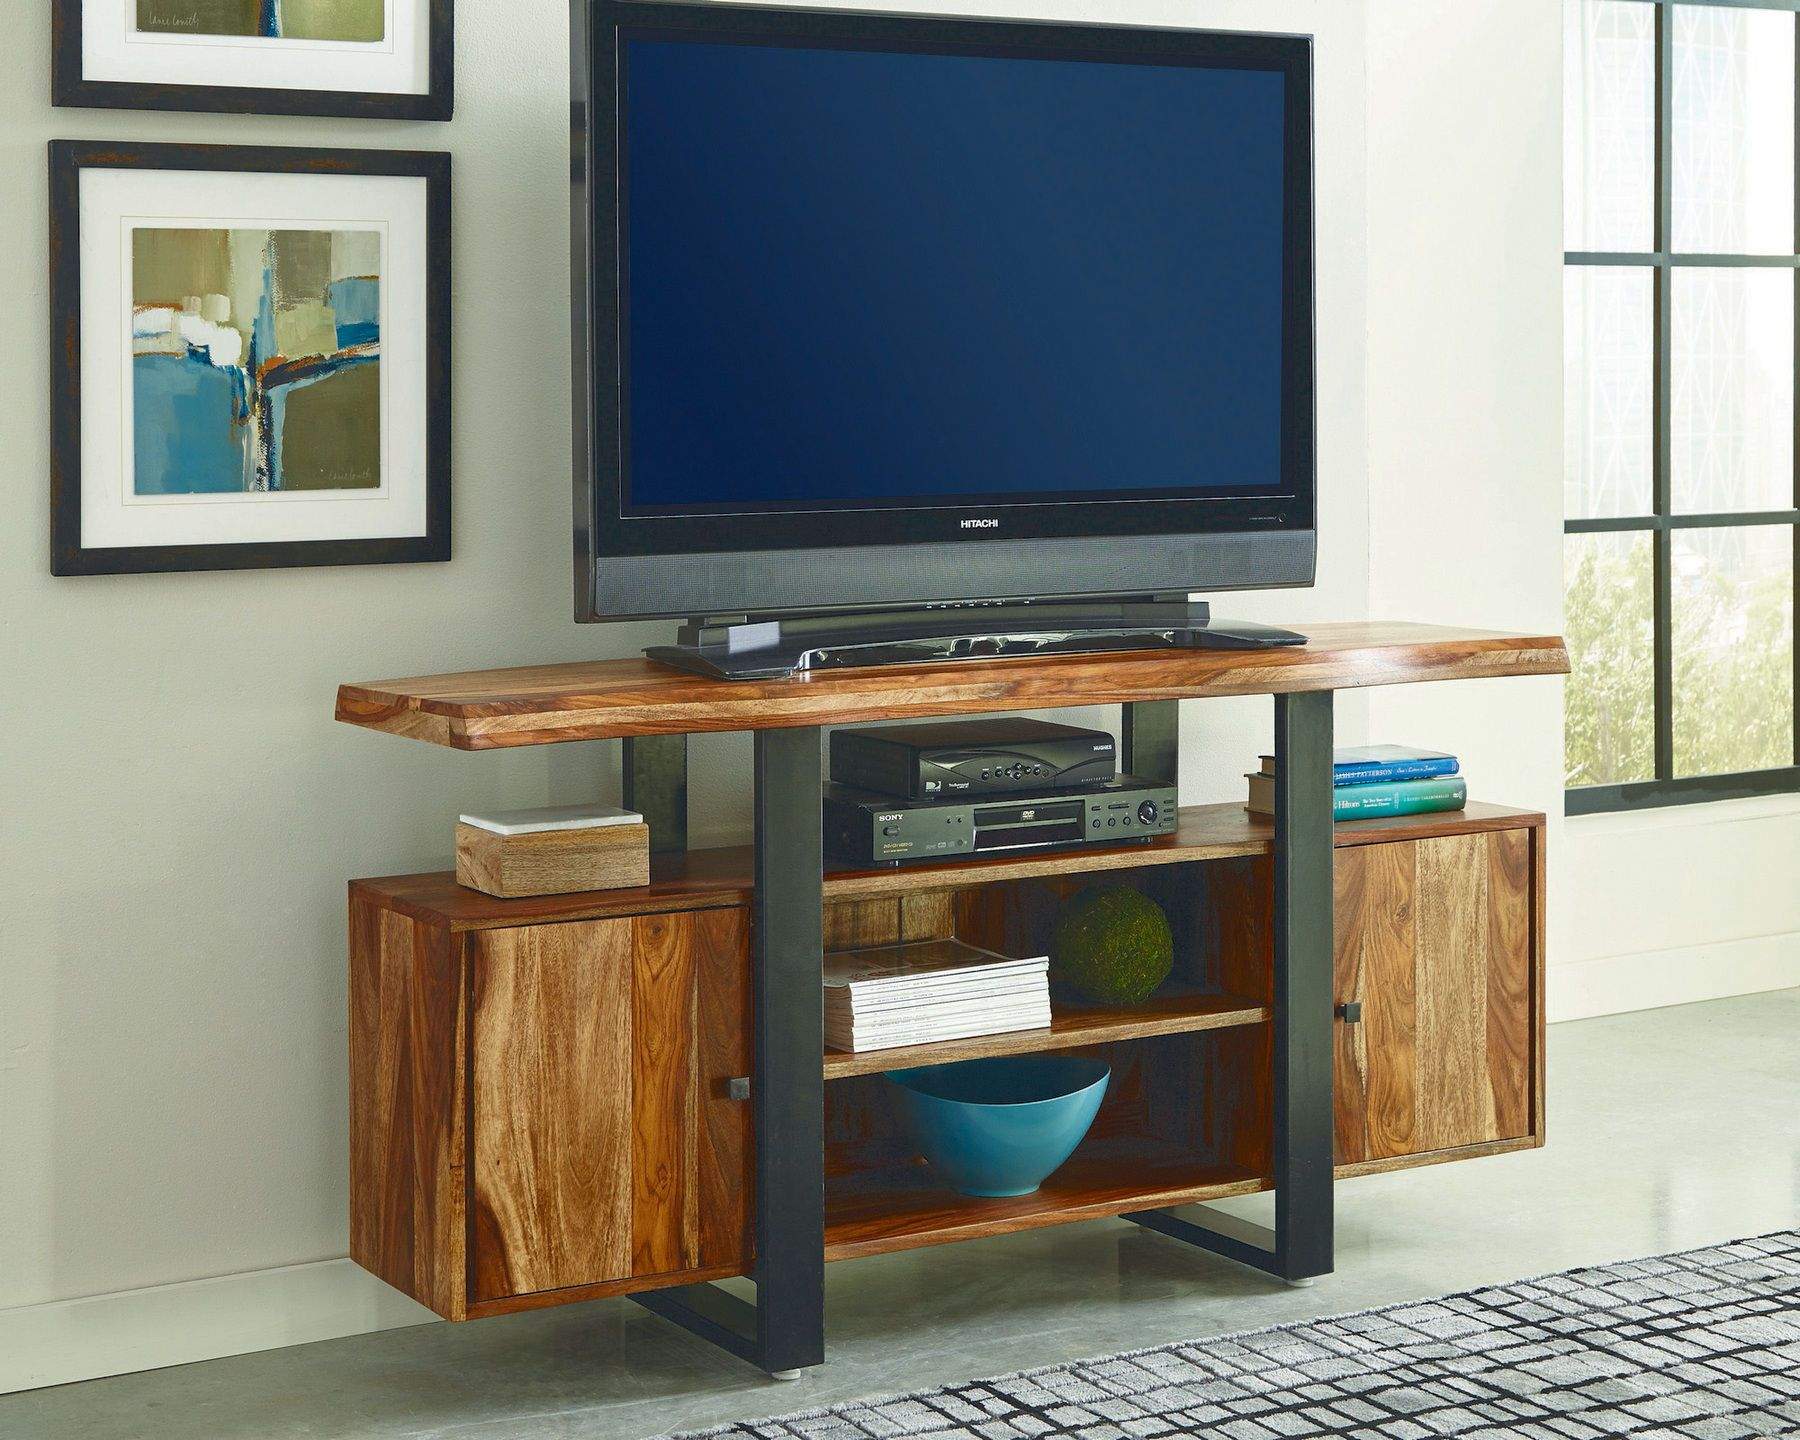 Knox Tv Stand 700890 Coaster Furniture Tv Stands Wooden Tv Stands Black Tv Console Wooden Tv Console